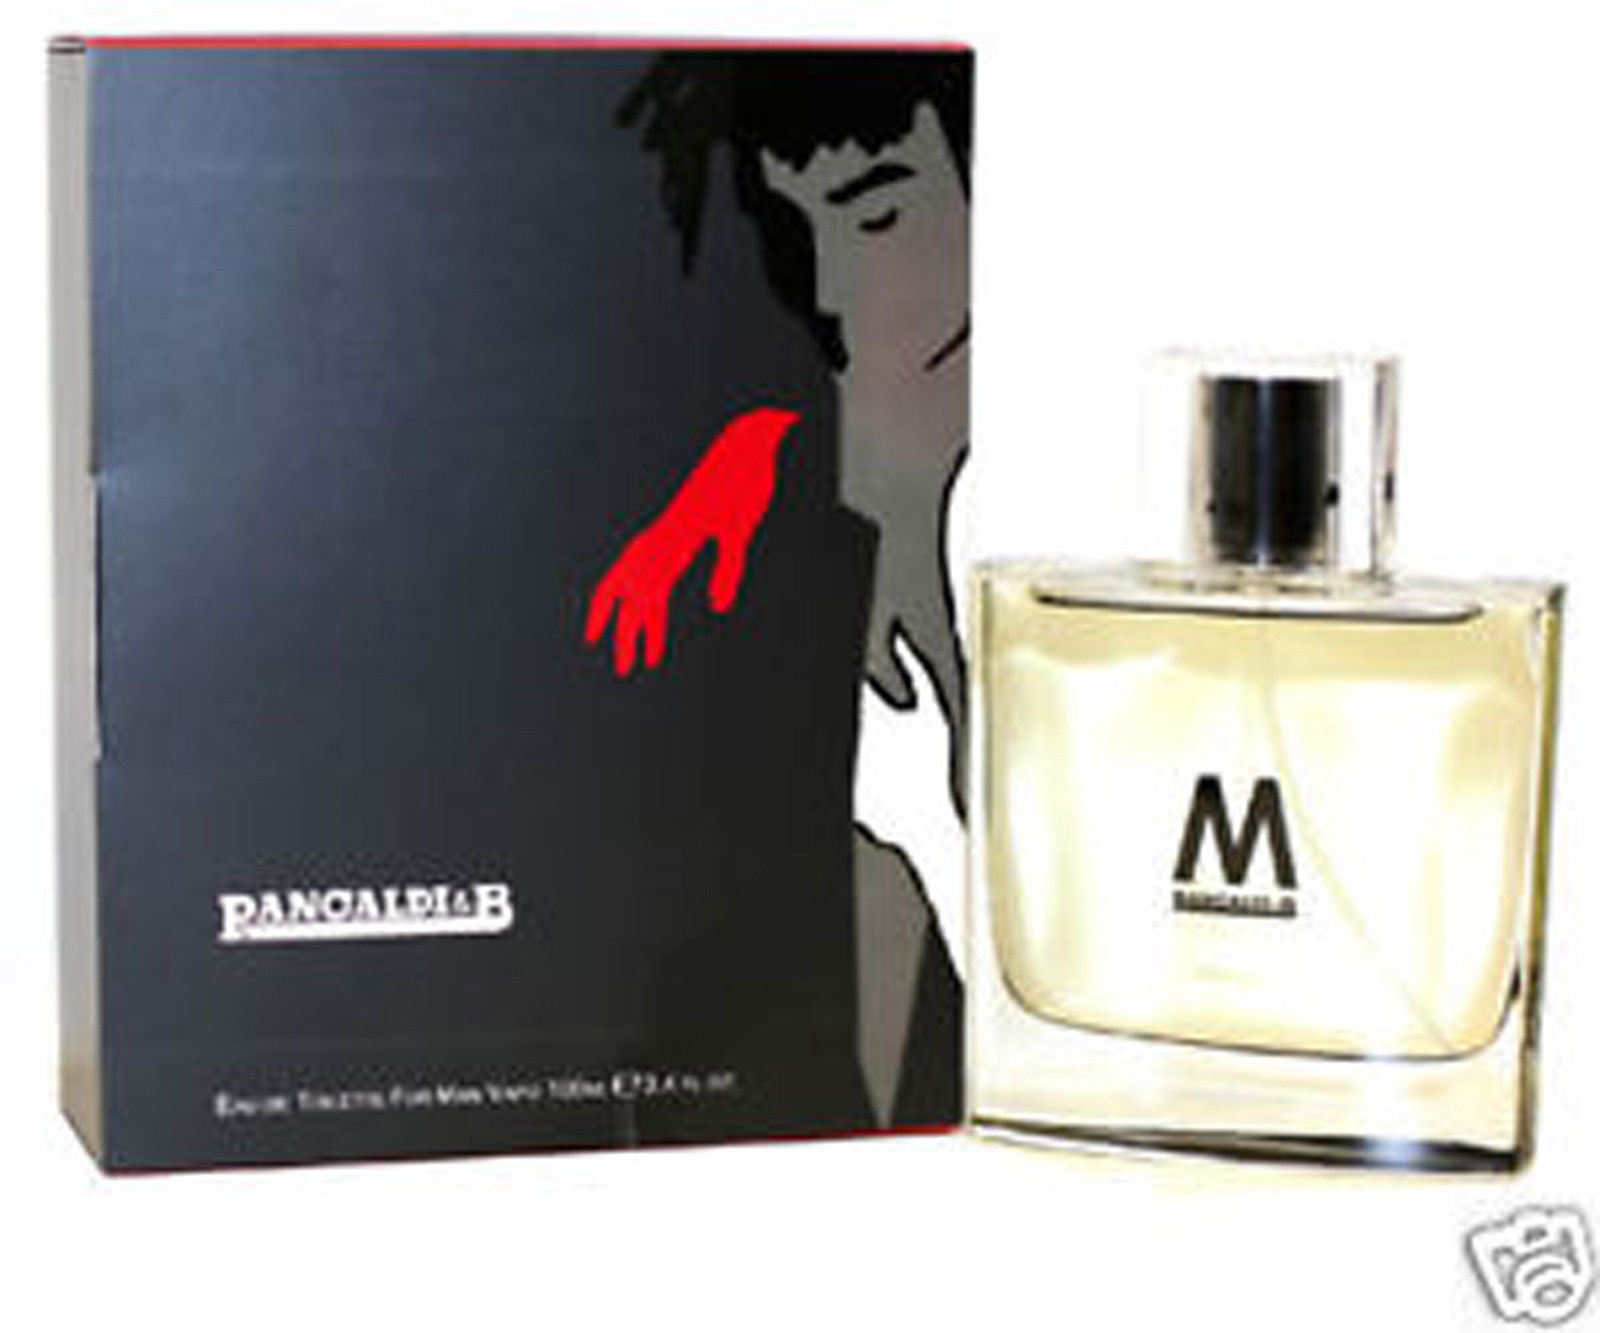 PANCALDI EAU DE TOILETTE FOR MAN PROFUMO UOMO 100 ml